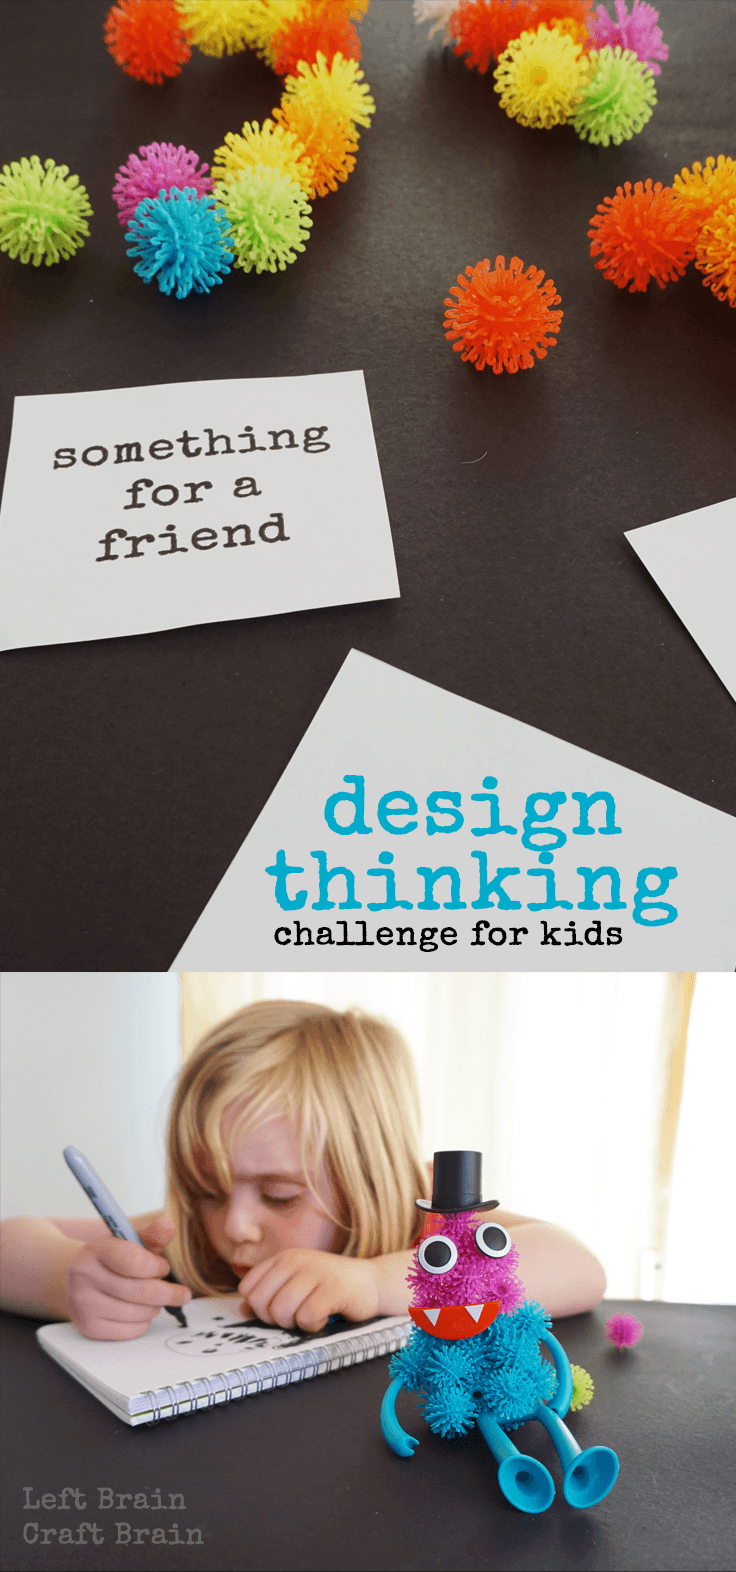 Inspire Design Thinking in your kids with this fun building challenge.